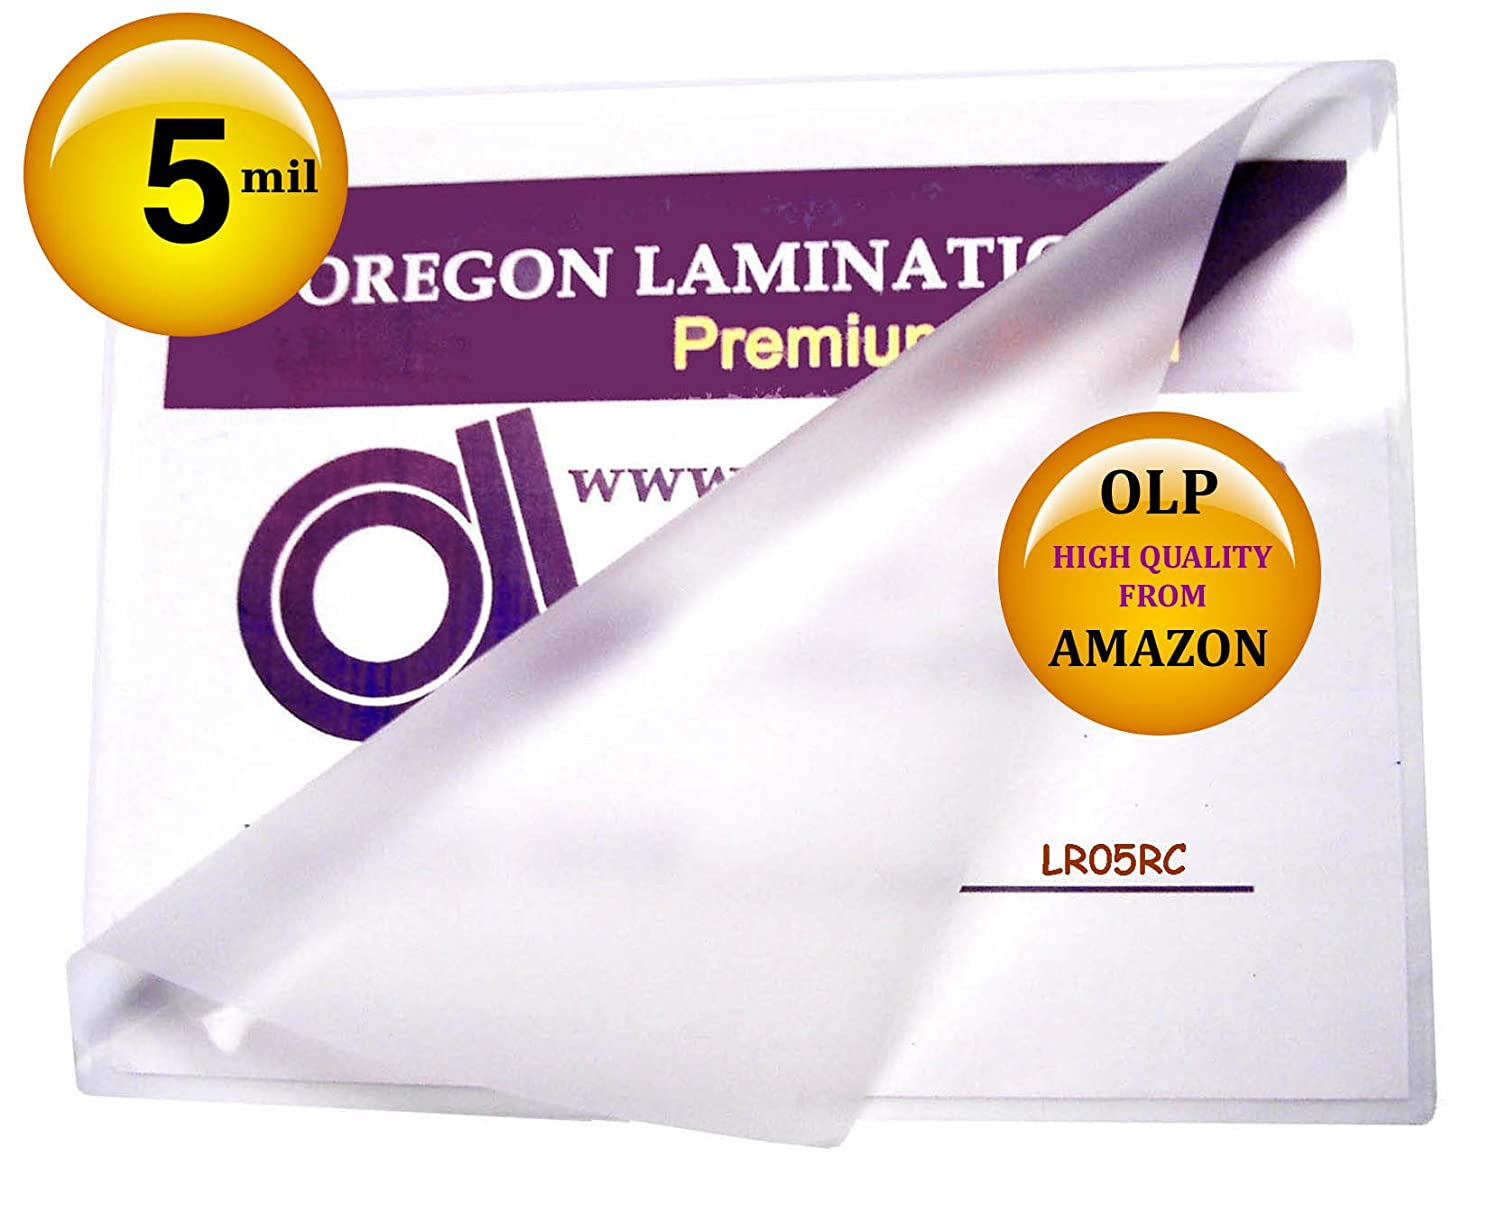 回想ピース恋人Letter Laminating Pouches 5 Mil 9 x 11-1/2 Hot Qty 100 by Oregon Laminations Premium